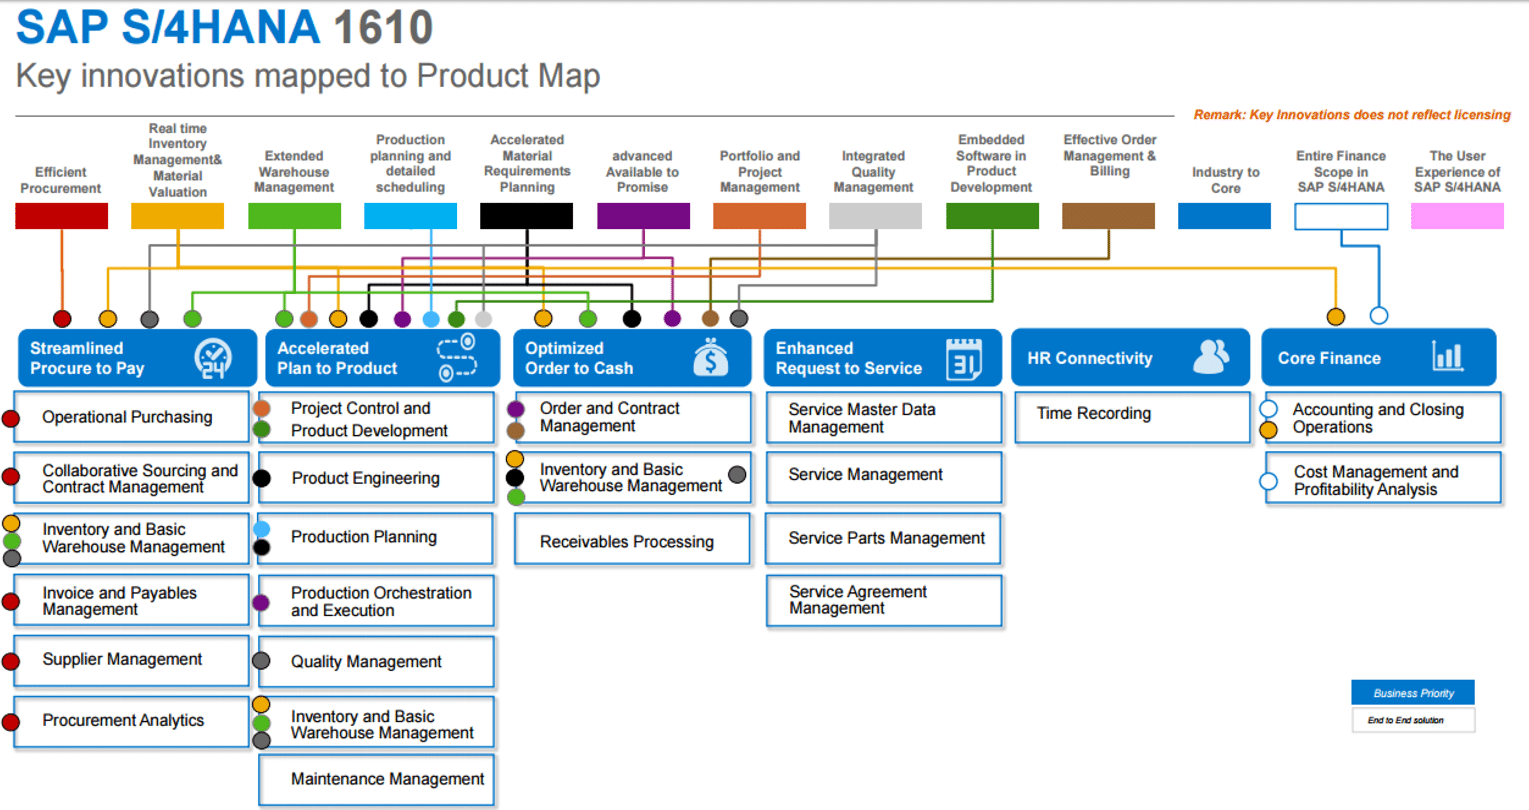 S4HANA Key Innovation mapped to product map x